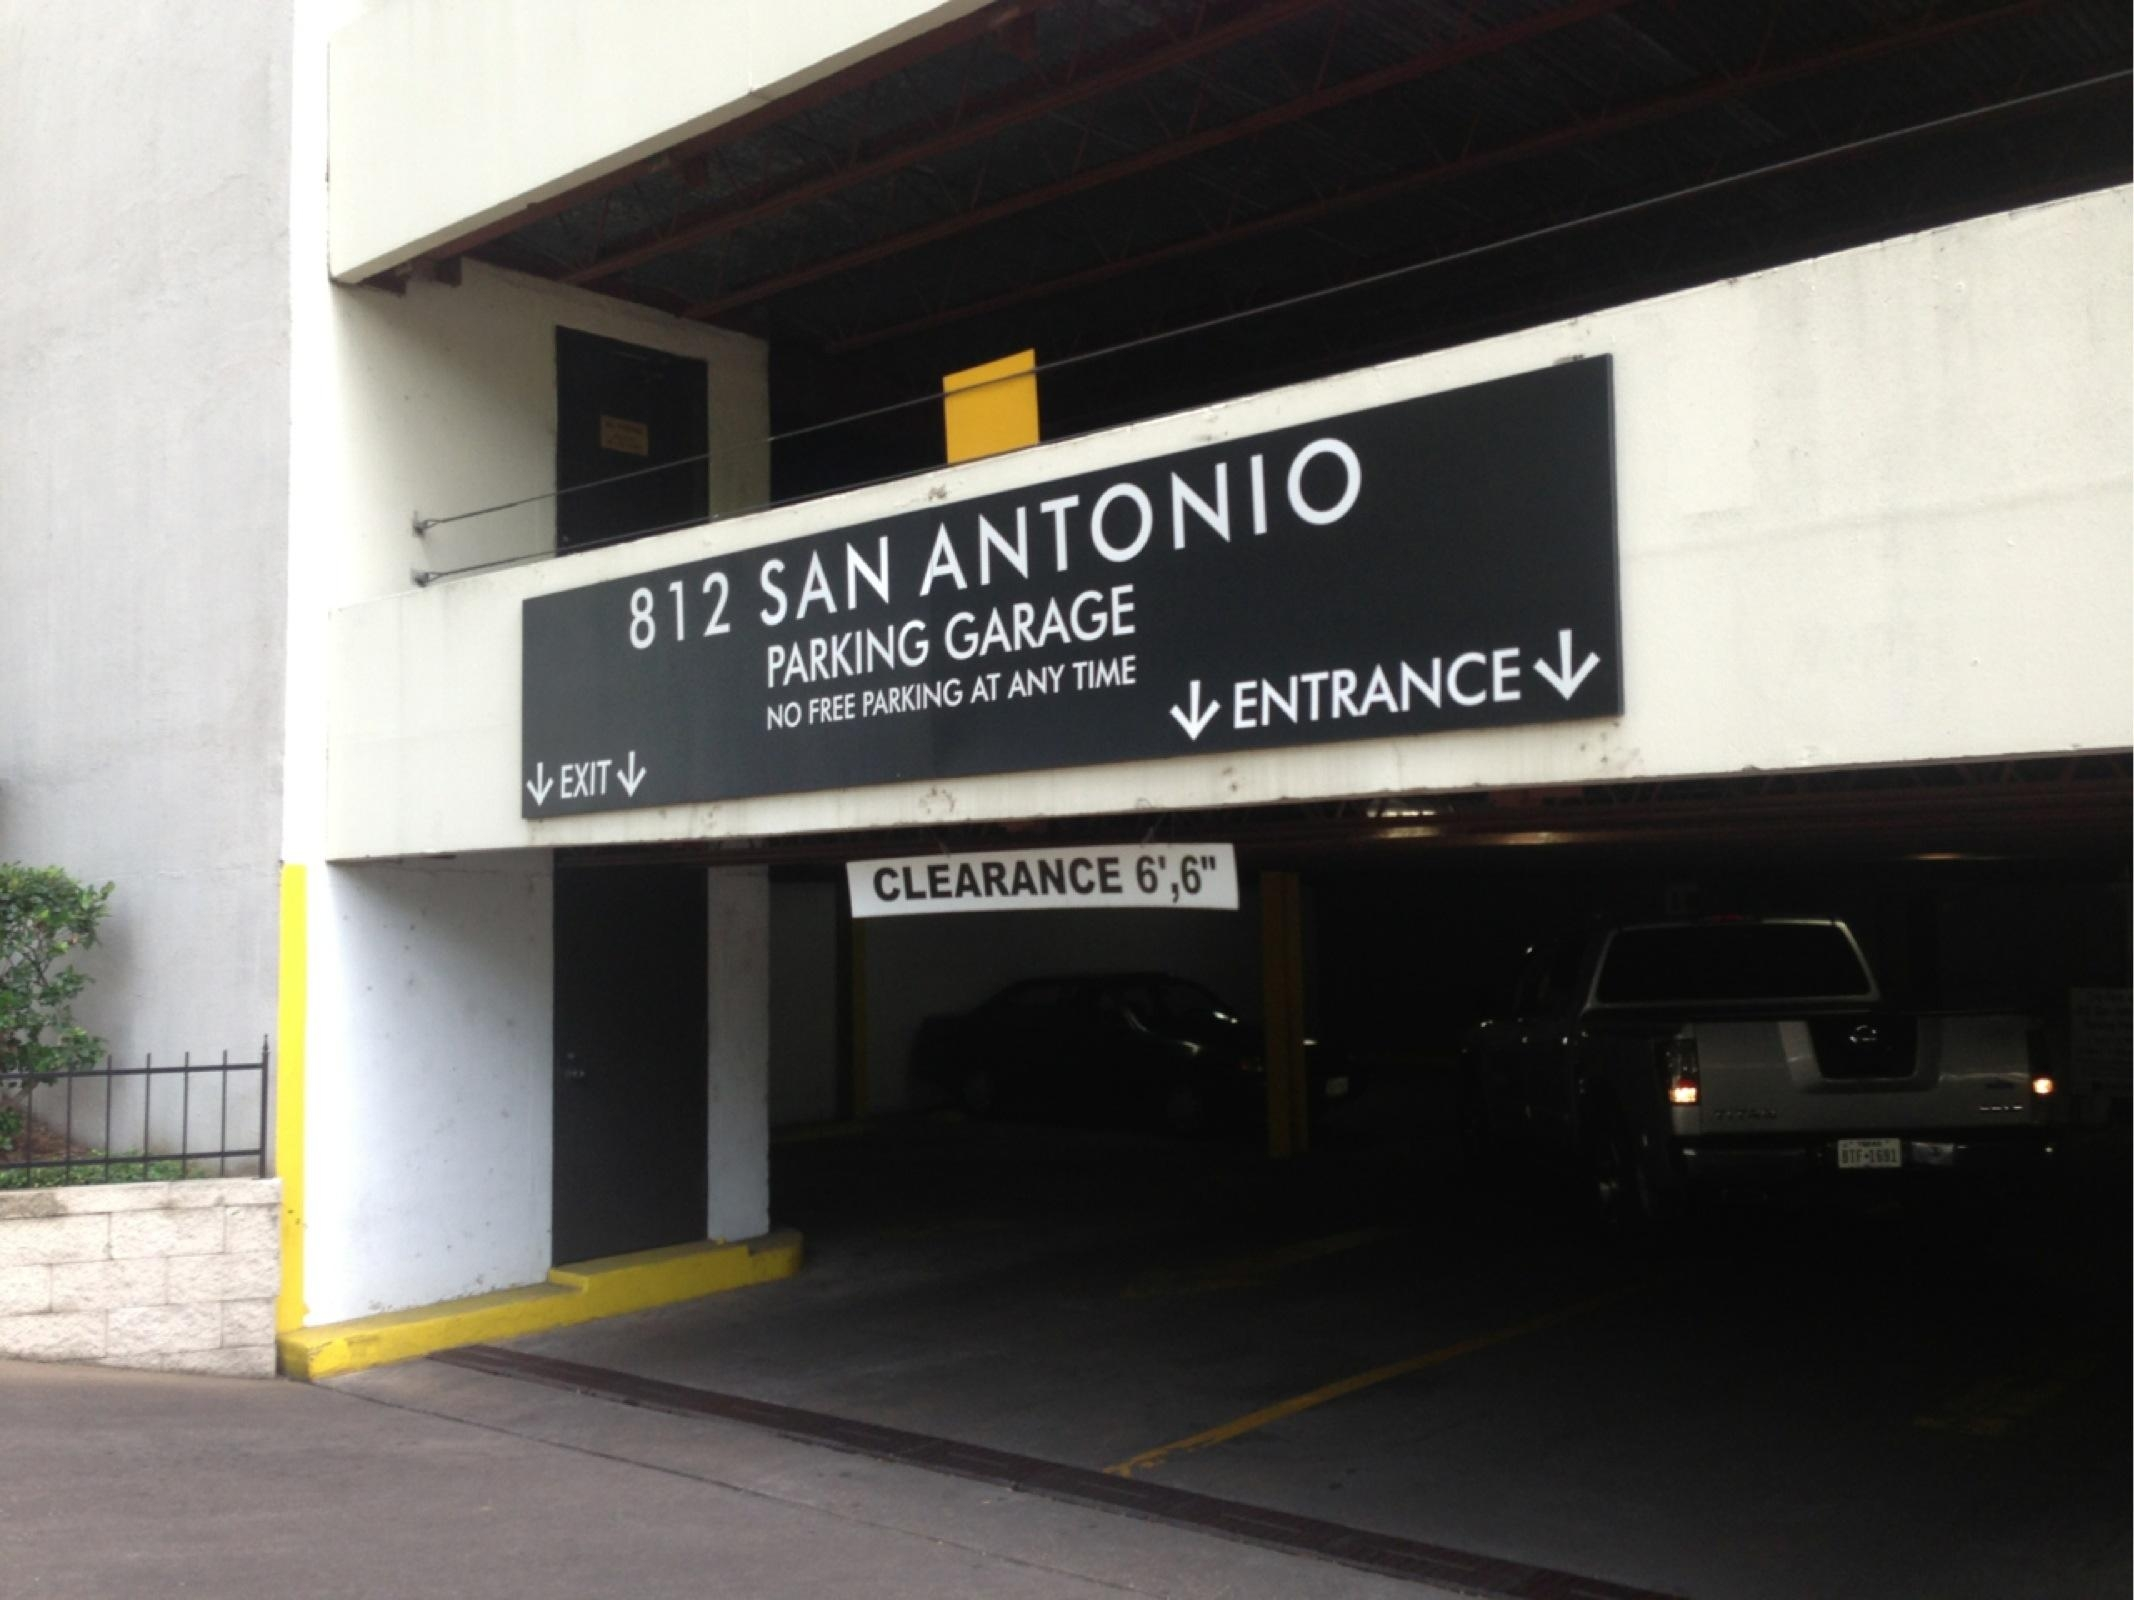 812 San Antonio Parking Garage Parking In Austin Parkme